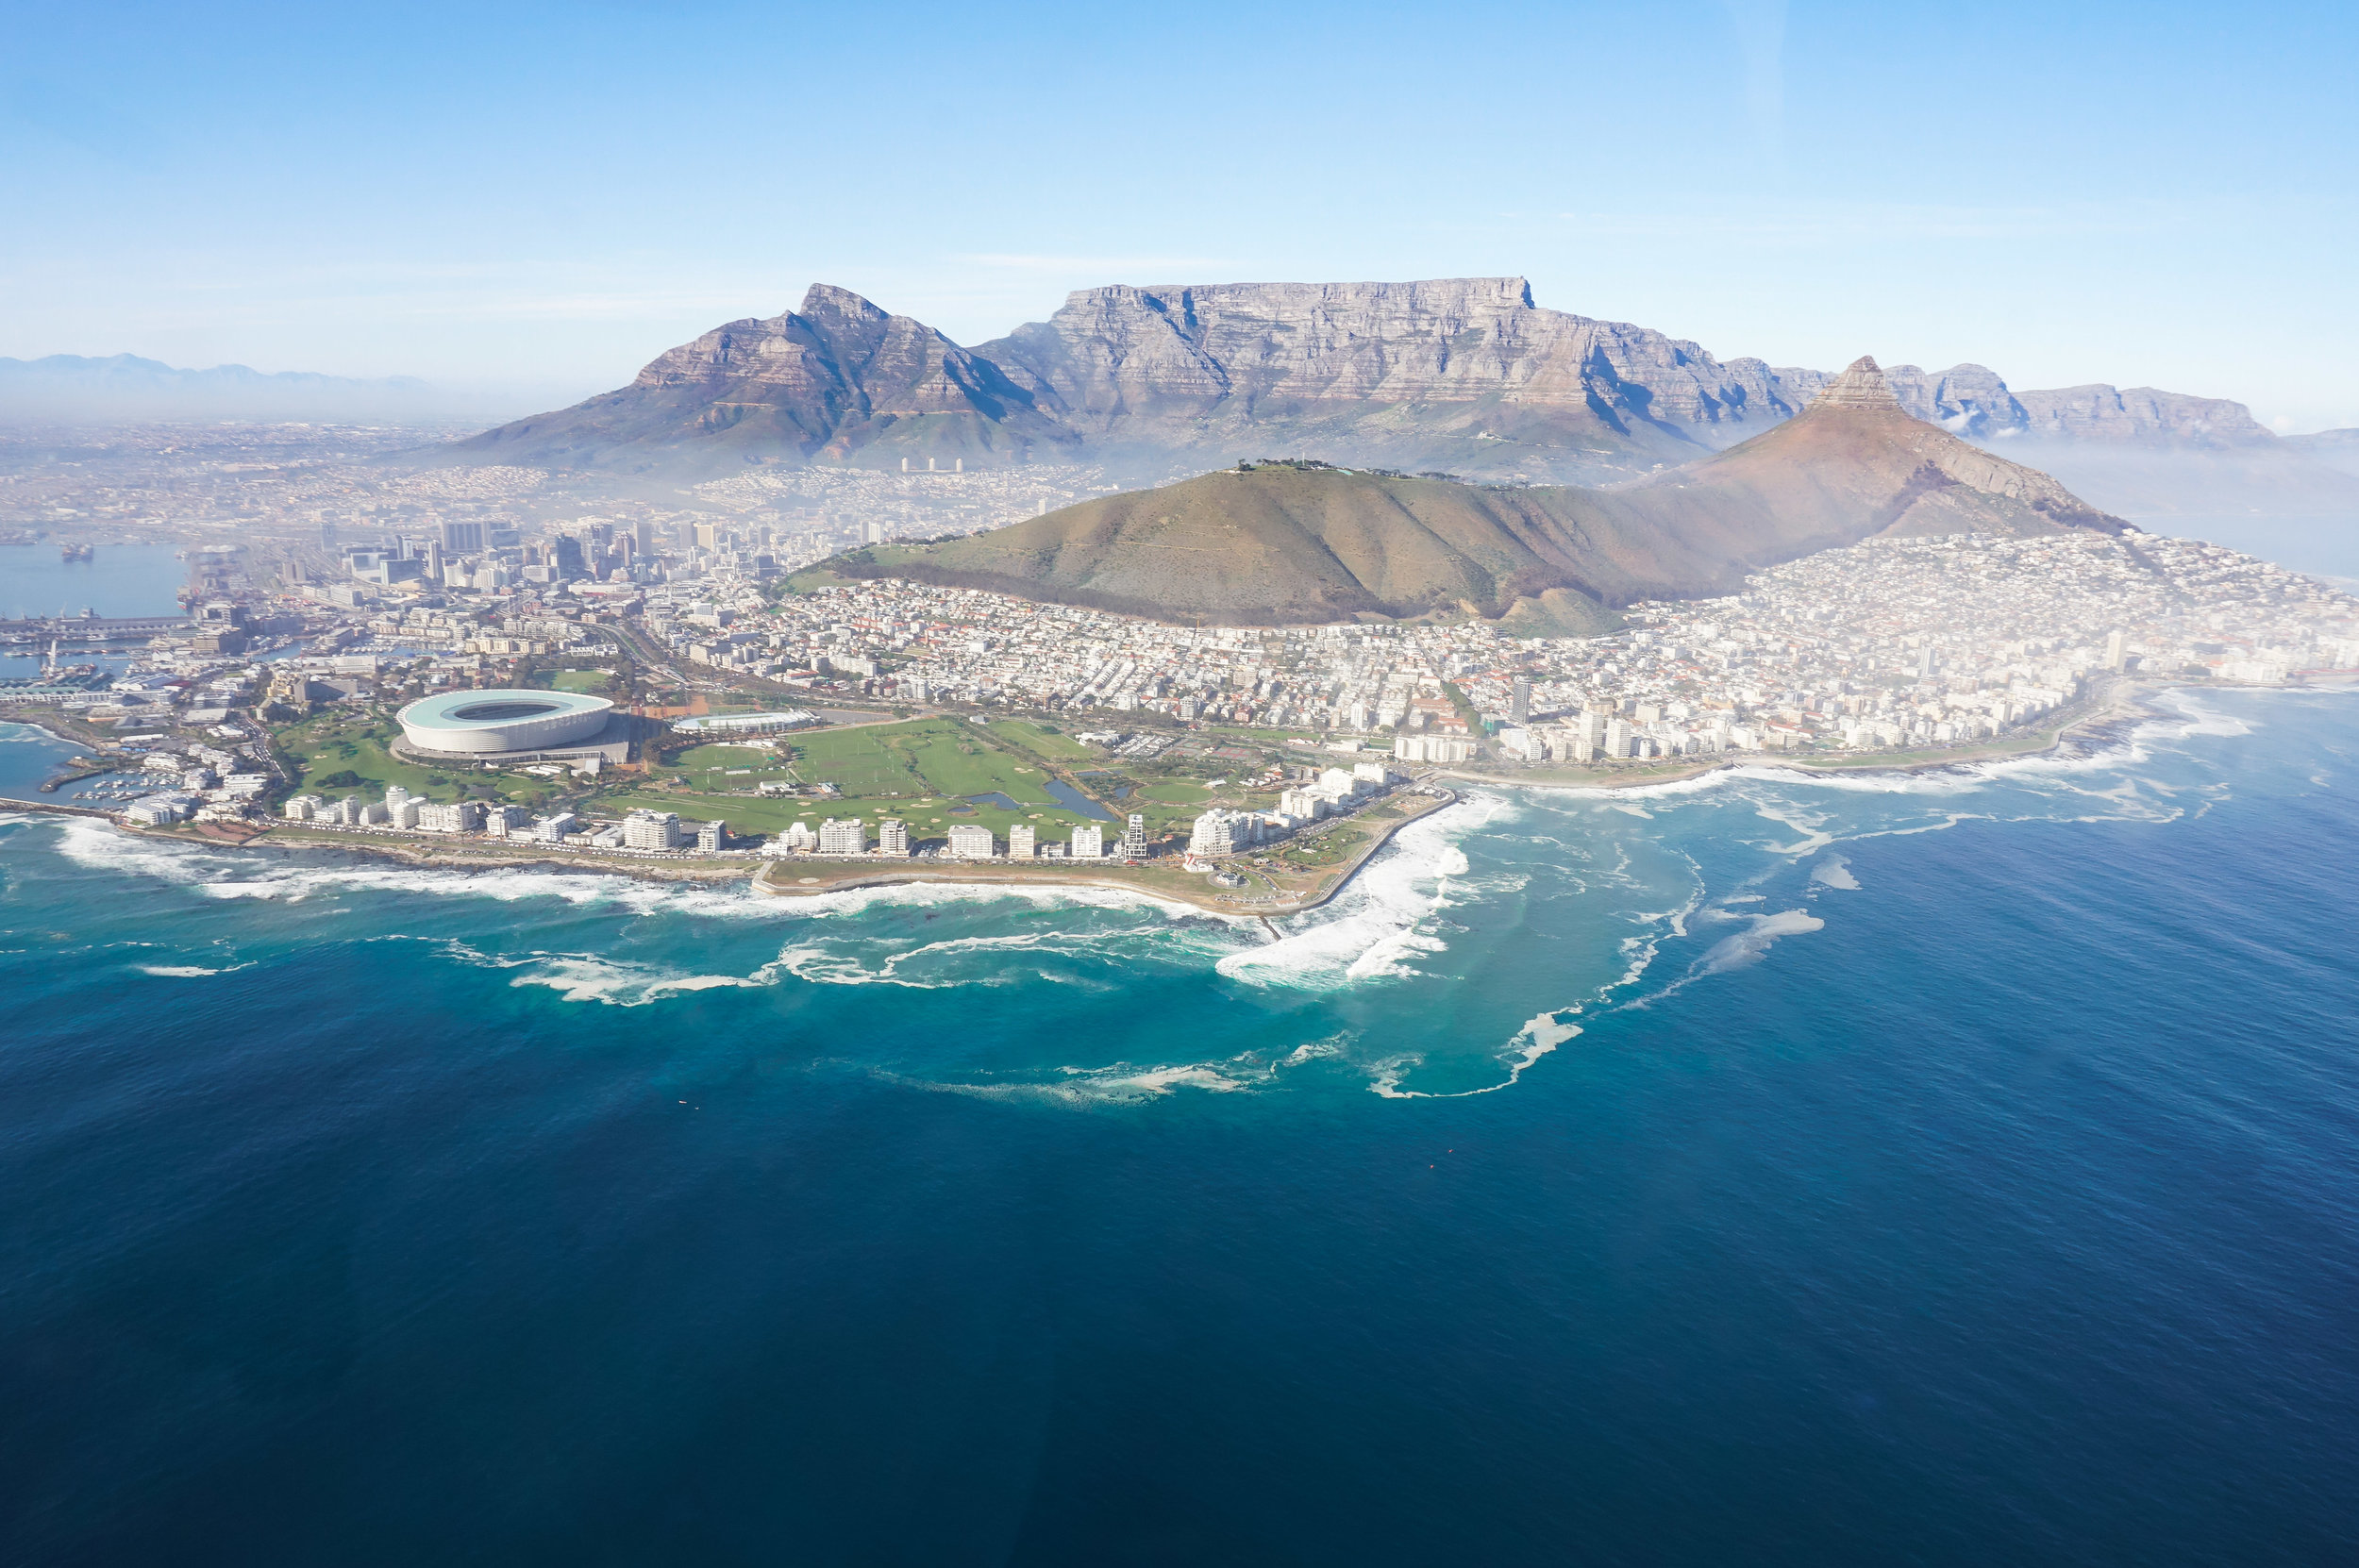 curio.trips.south.africa.cape.town.helicopter.flight.stadium.lions.head.table.mountain.landscape.jpg